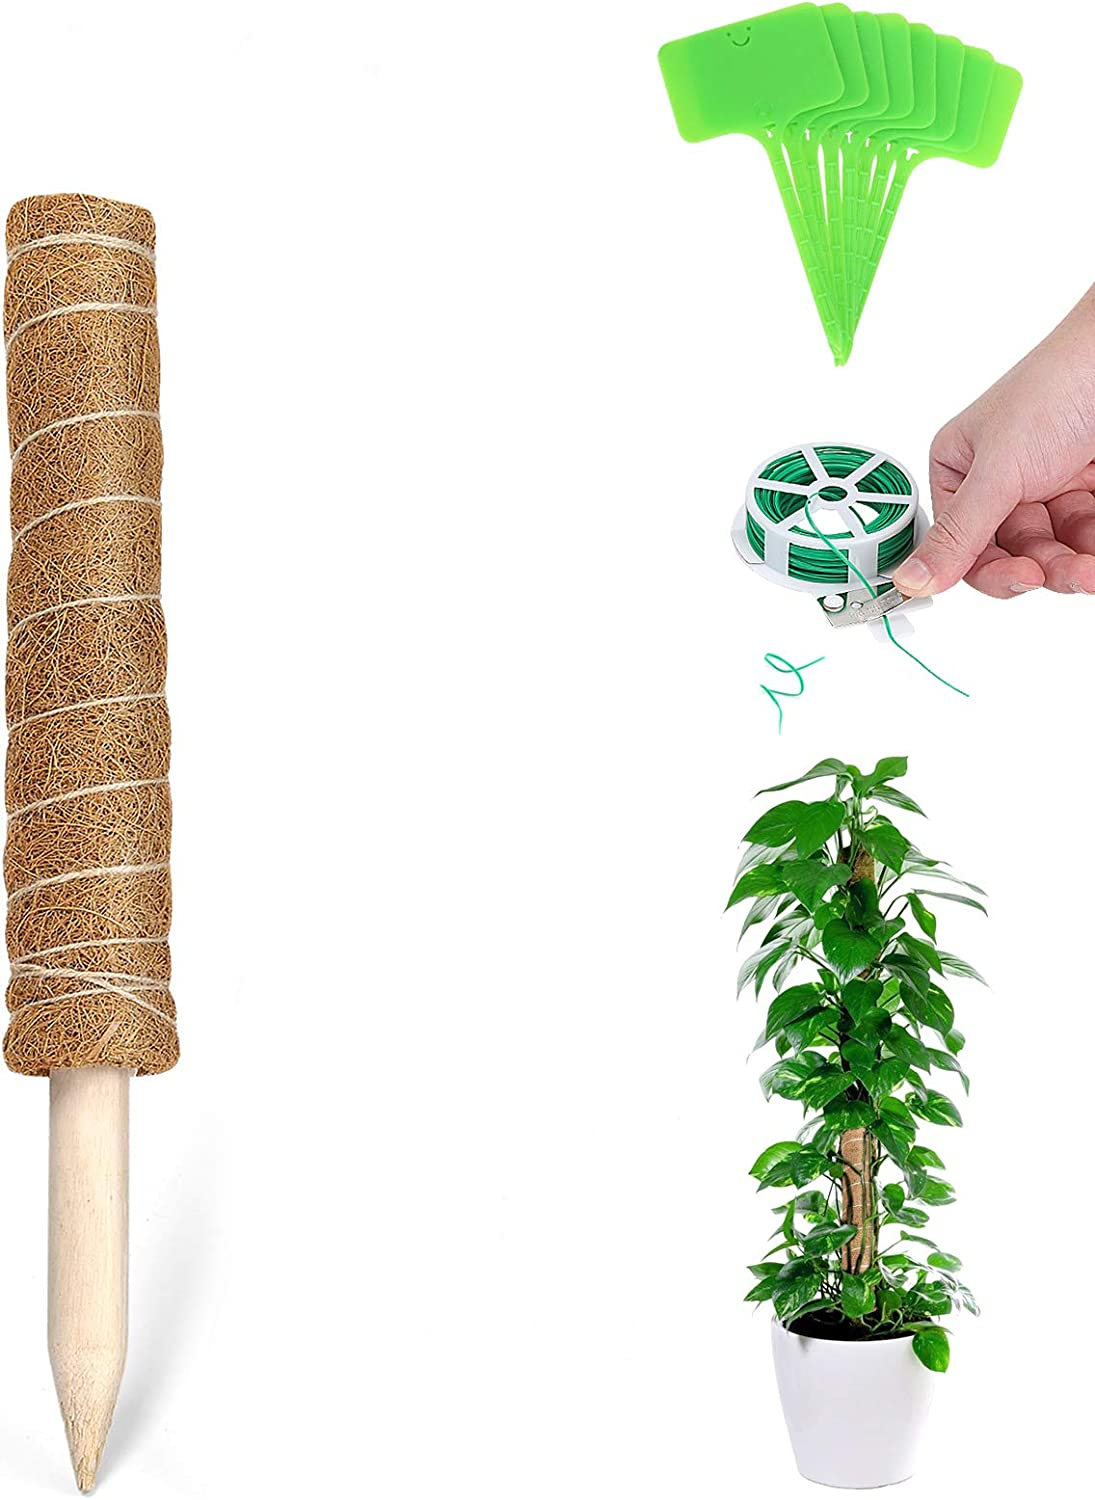 UPMCT Moss Industry No. 1 Pole Plant Support Extendable Extension 12 Inches Co latest